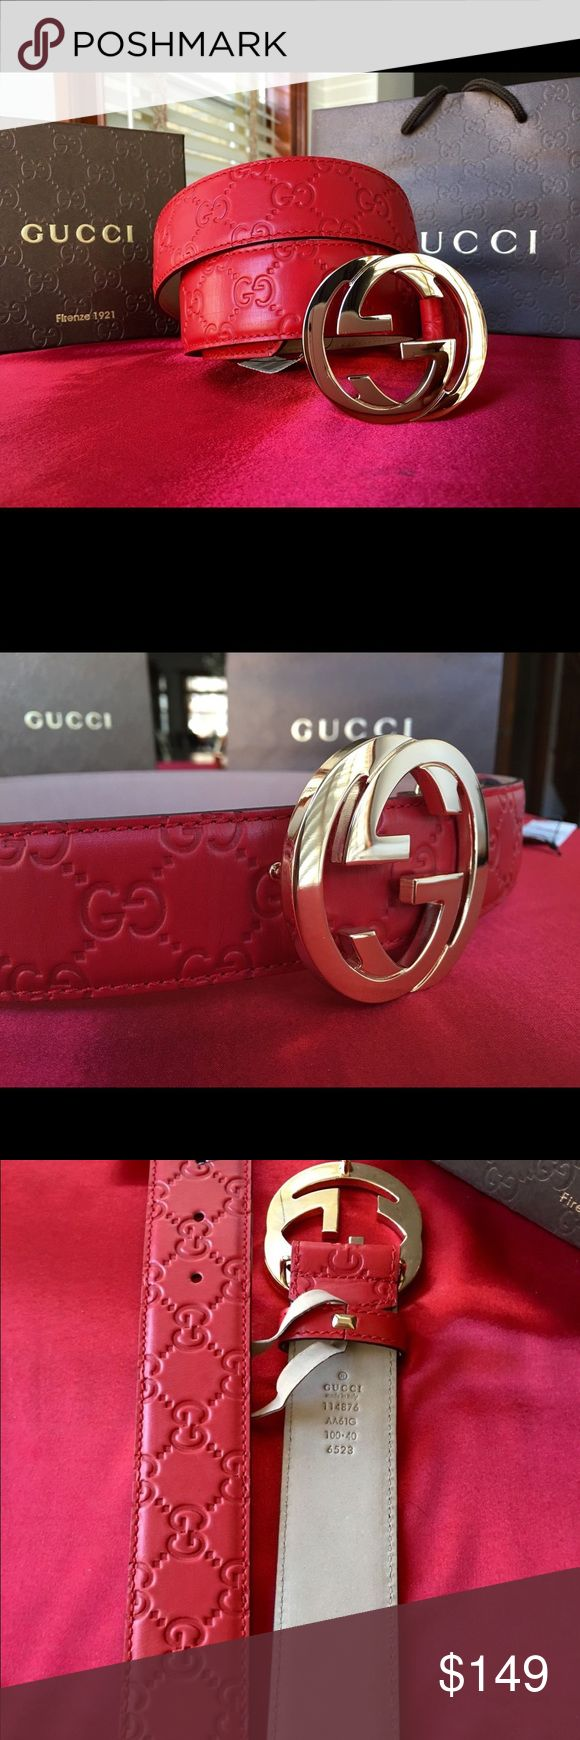 Red Gucci Belt | Gucci Belt Red | Mcm Belt For Men